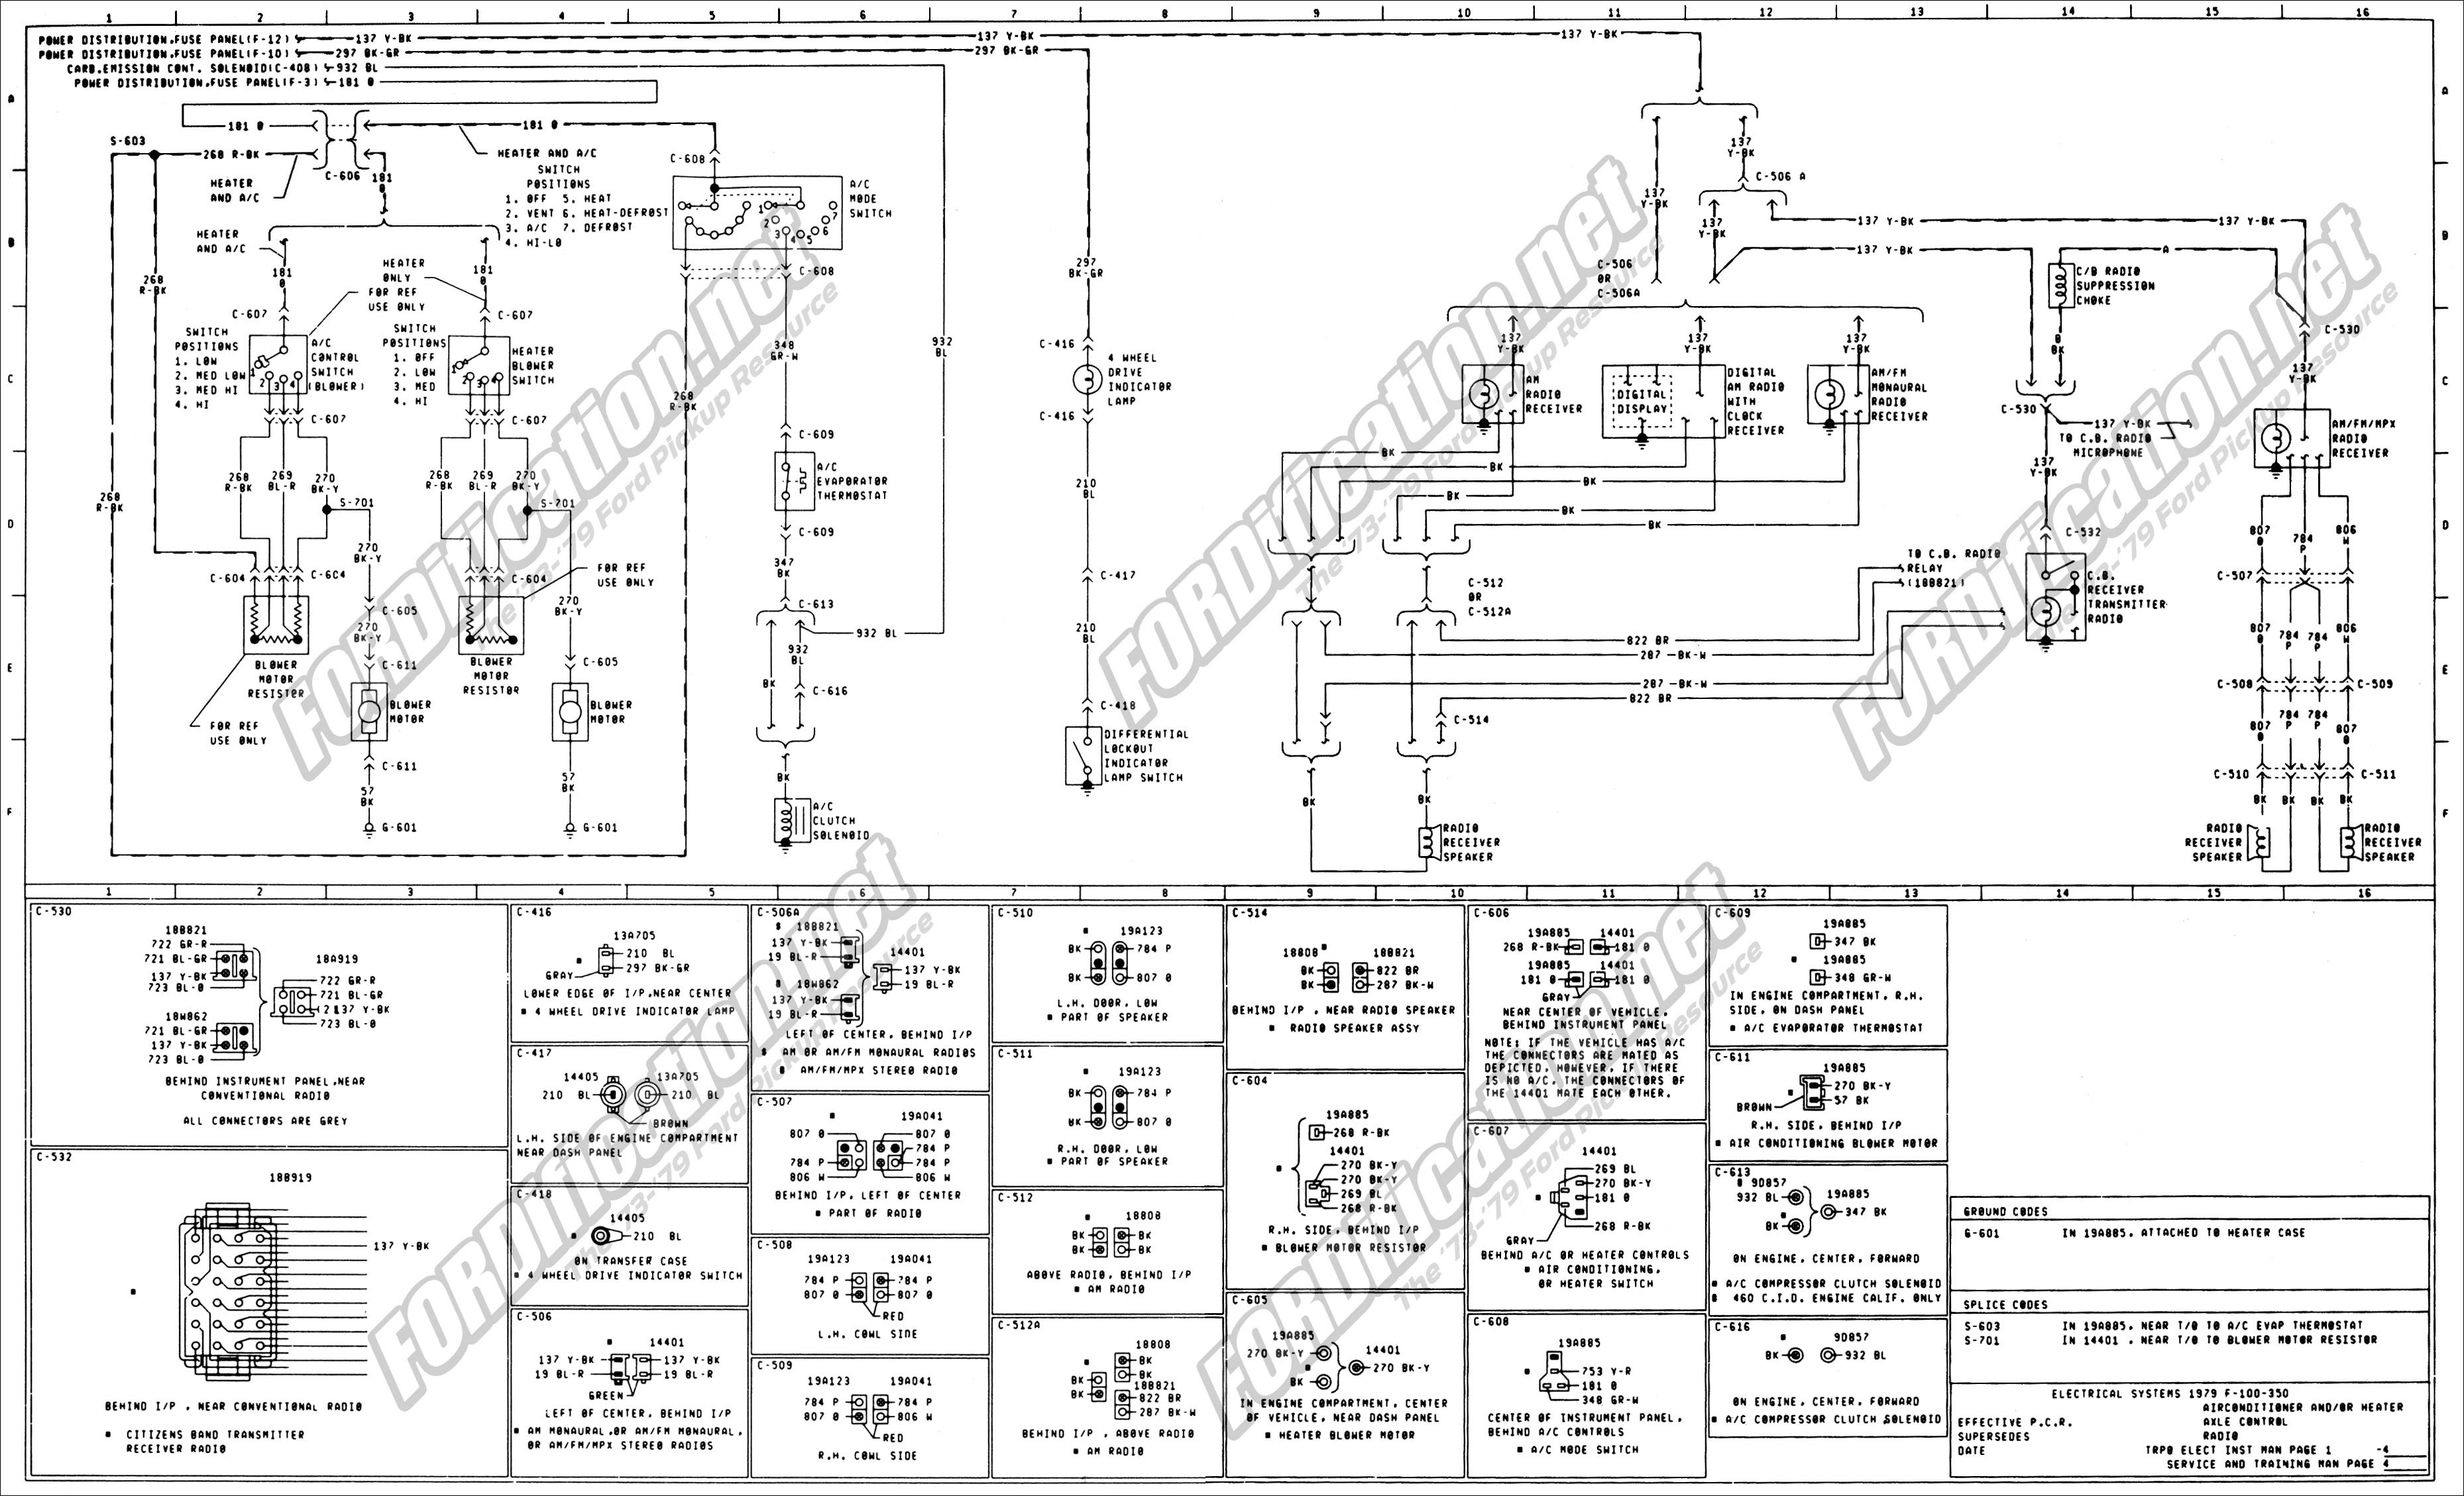 06 F250 Mirror Switch Wiring 1973 1979 ford Truck Wiring Diagrams & Schematics Of 06 F250 Mirror Switch Wiring